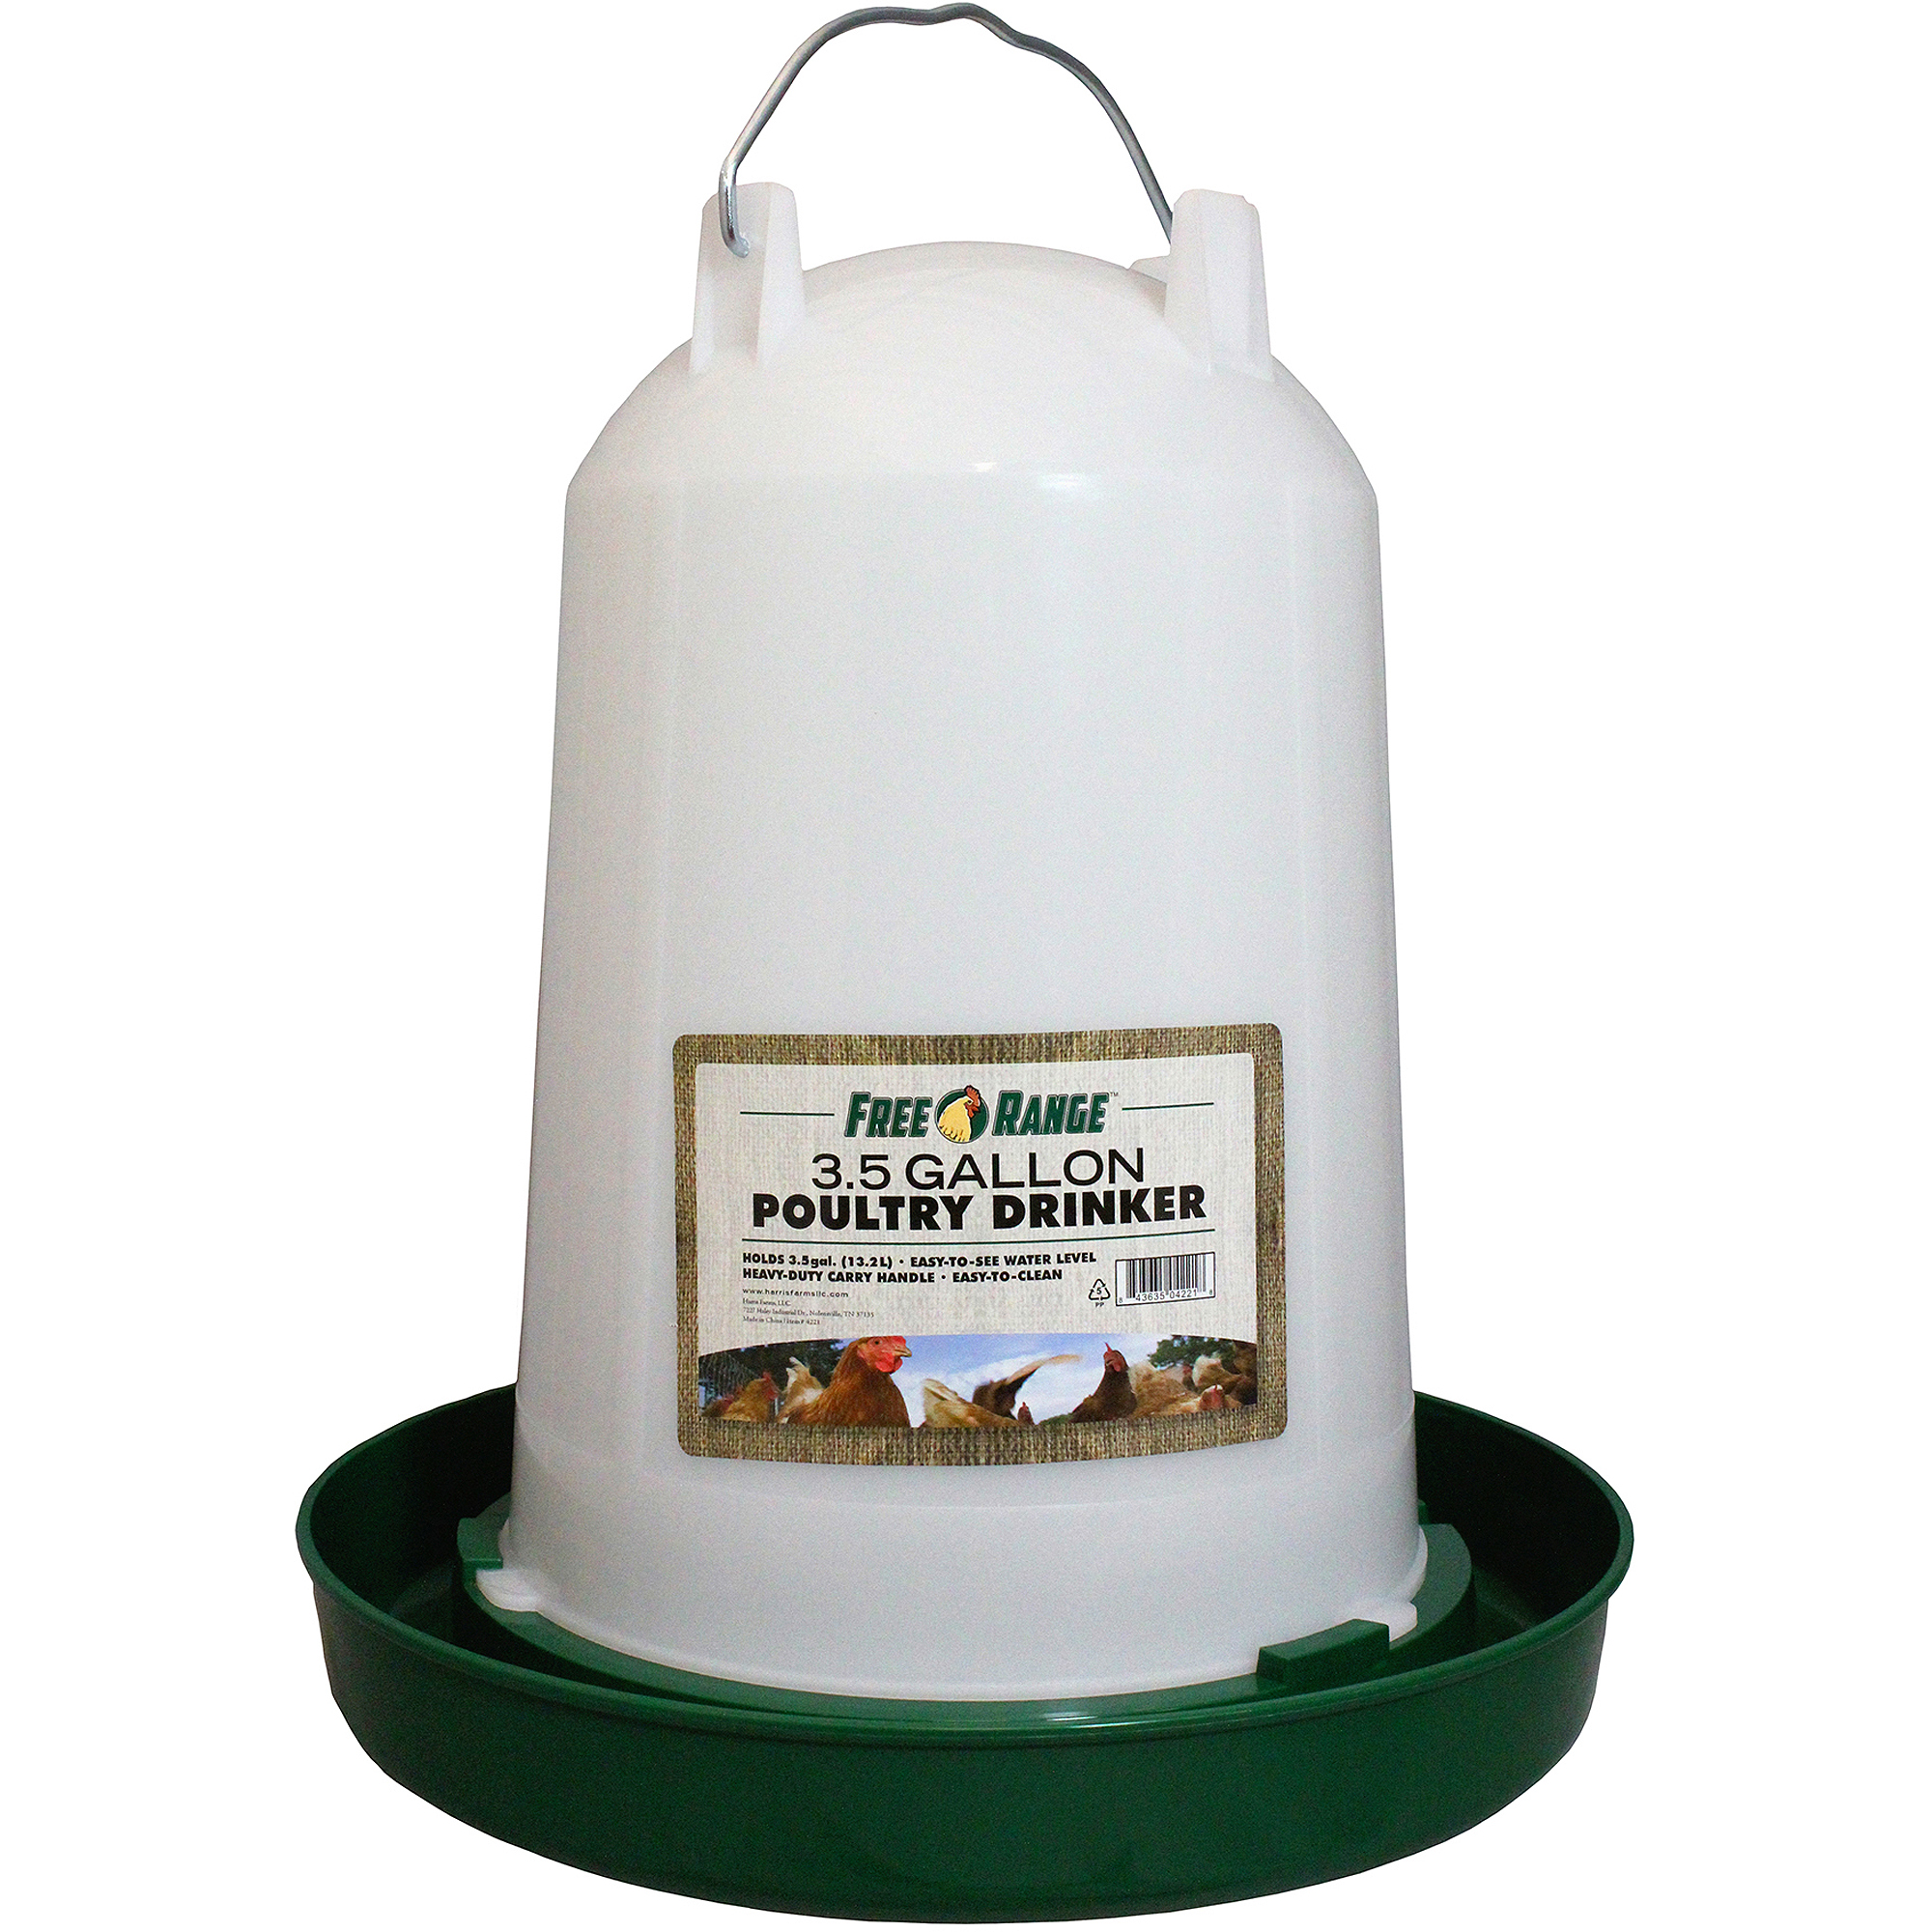 Harris Farms Llc Pet 4221 3.5 Gallon Plastic Poultry Water Fountain